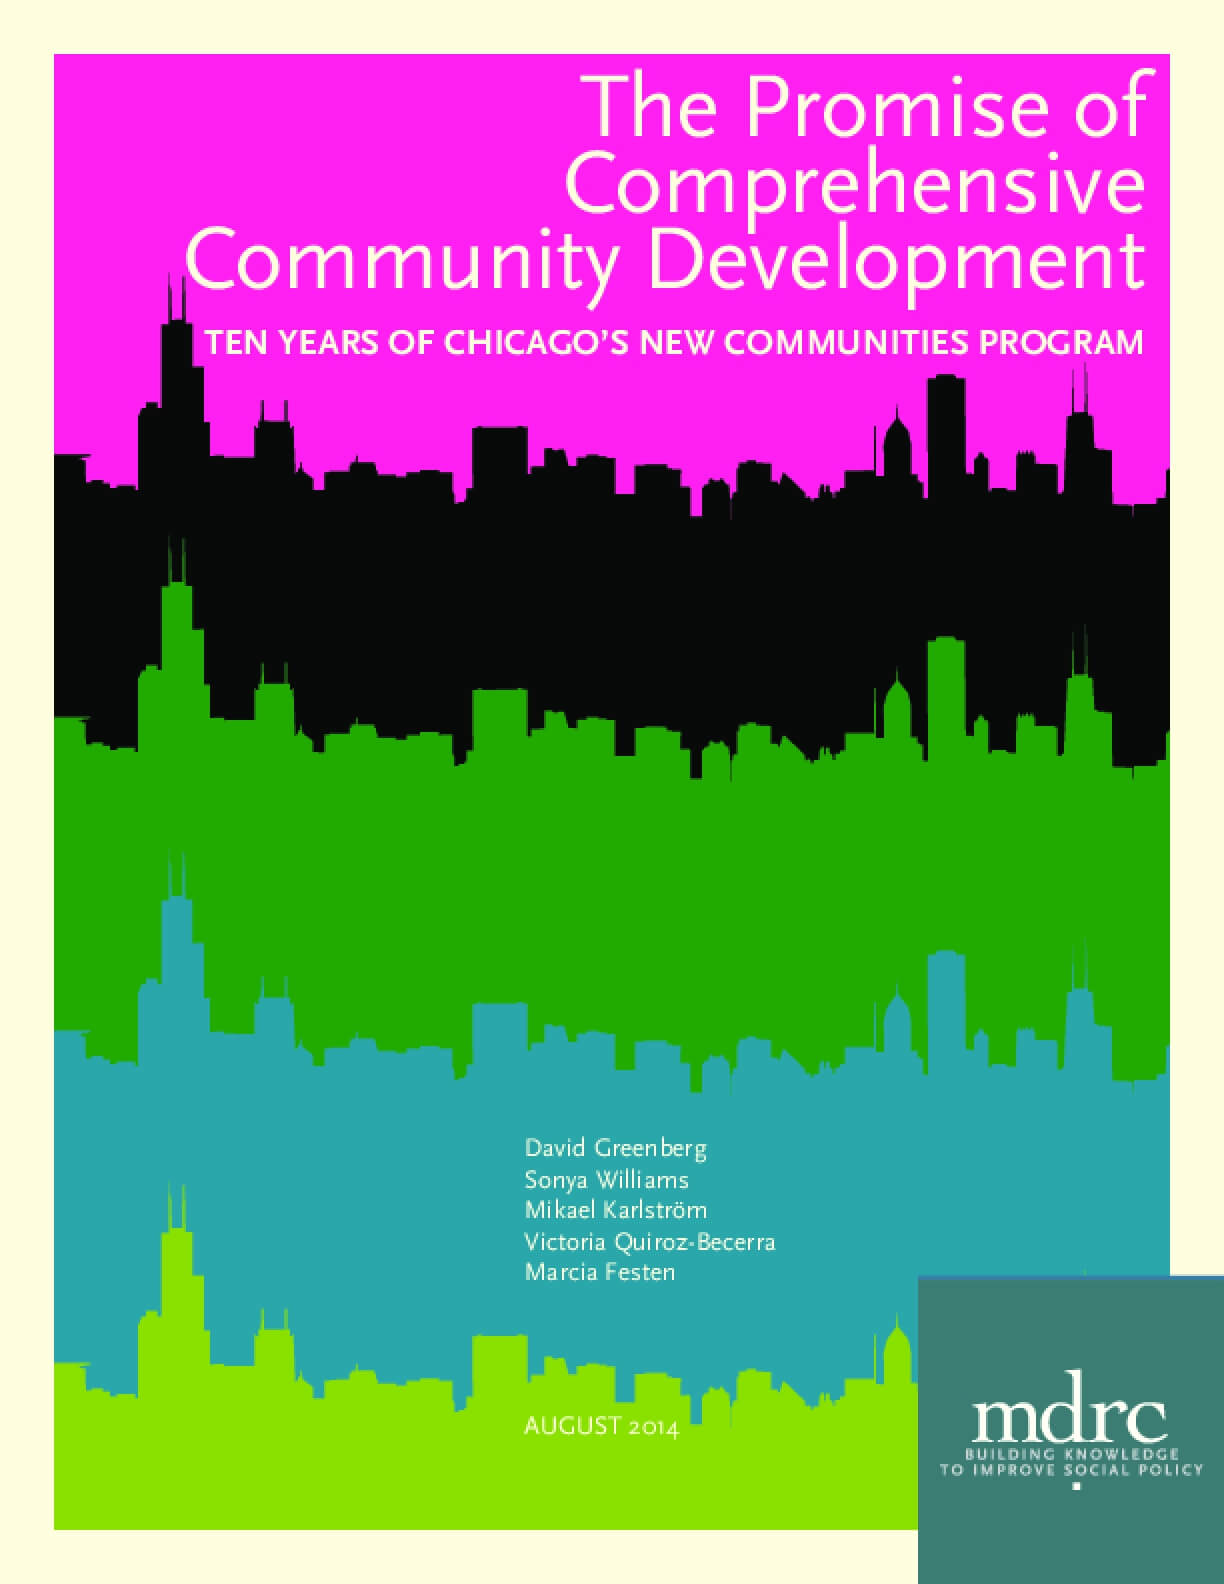 The Promise of Comprehensive Community Development: Ten Years of Chicago's New Communities Program